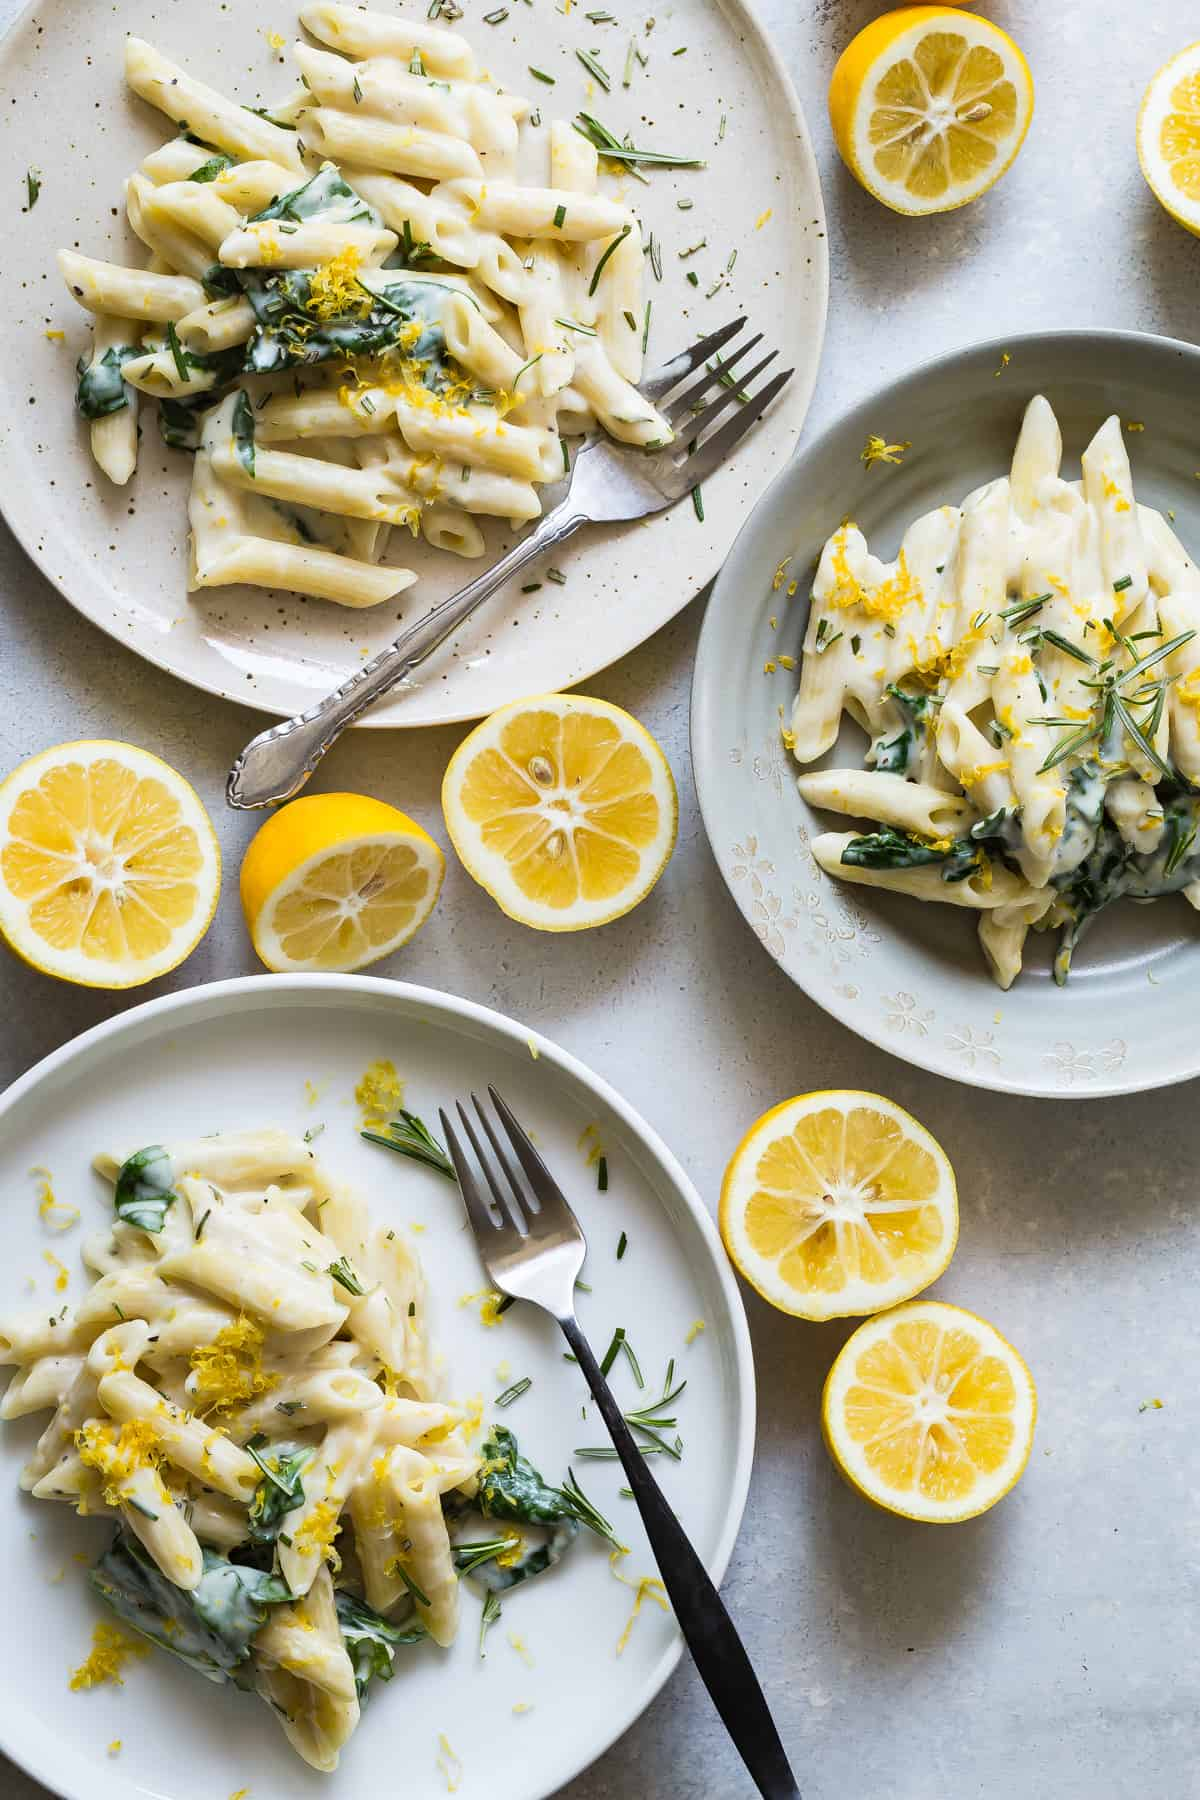 3 plates of penne pasta with creamy goat cheese sauce